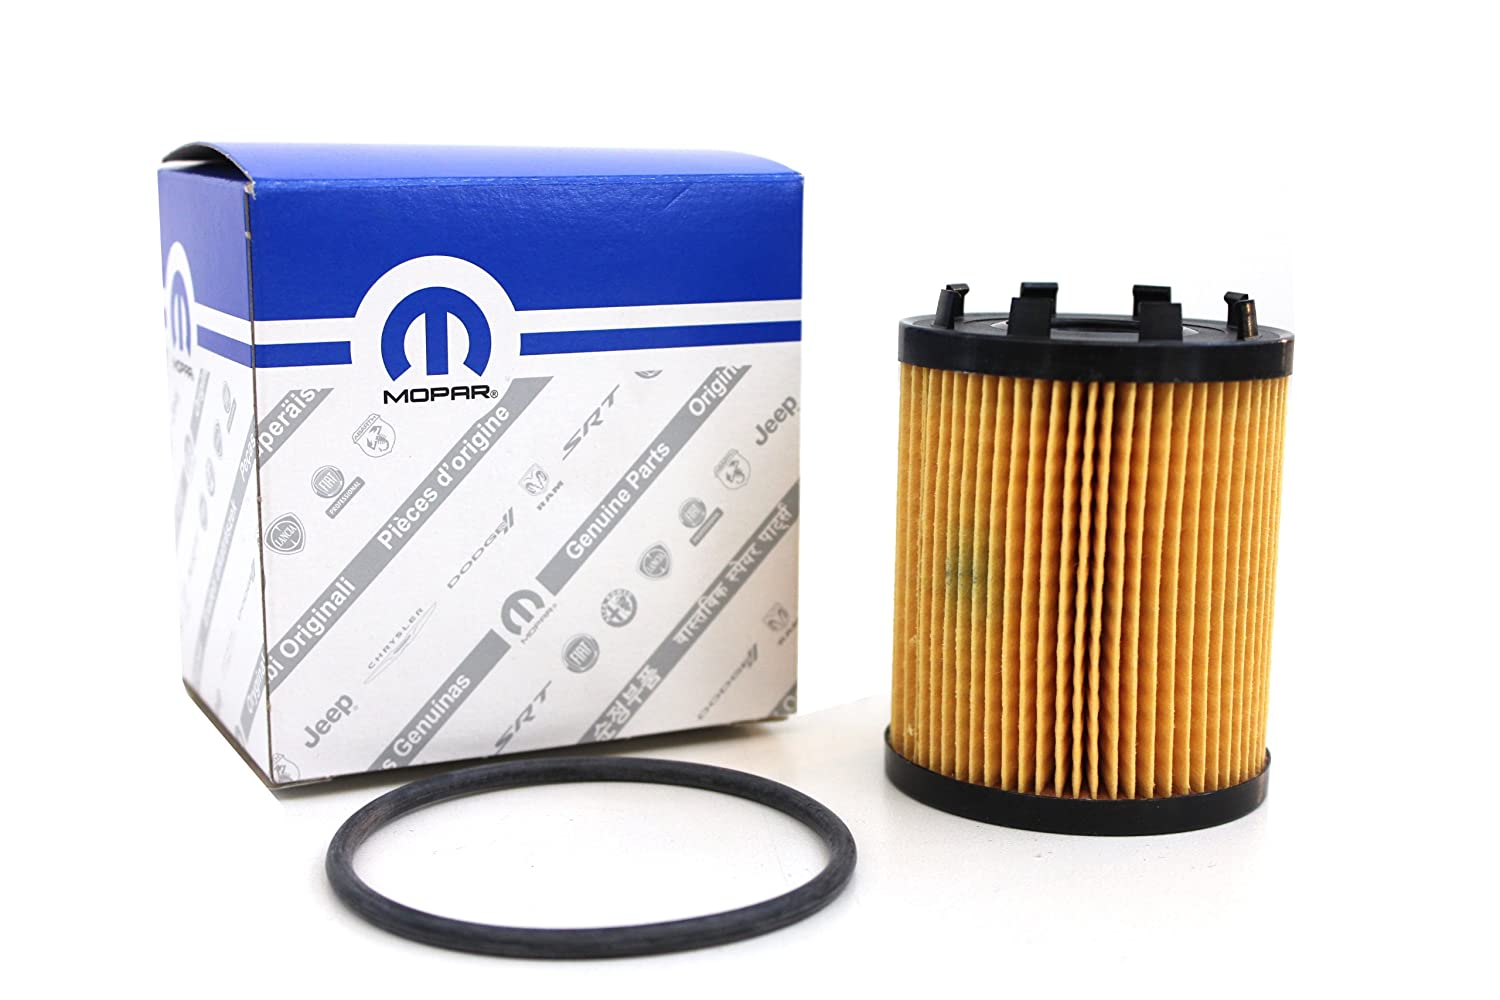 Genuine Fiat Parts 68102241AA Oil Filter, Oil Filters & Accessories